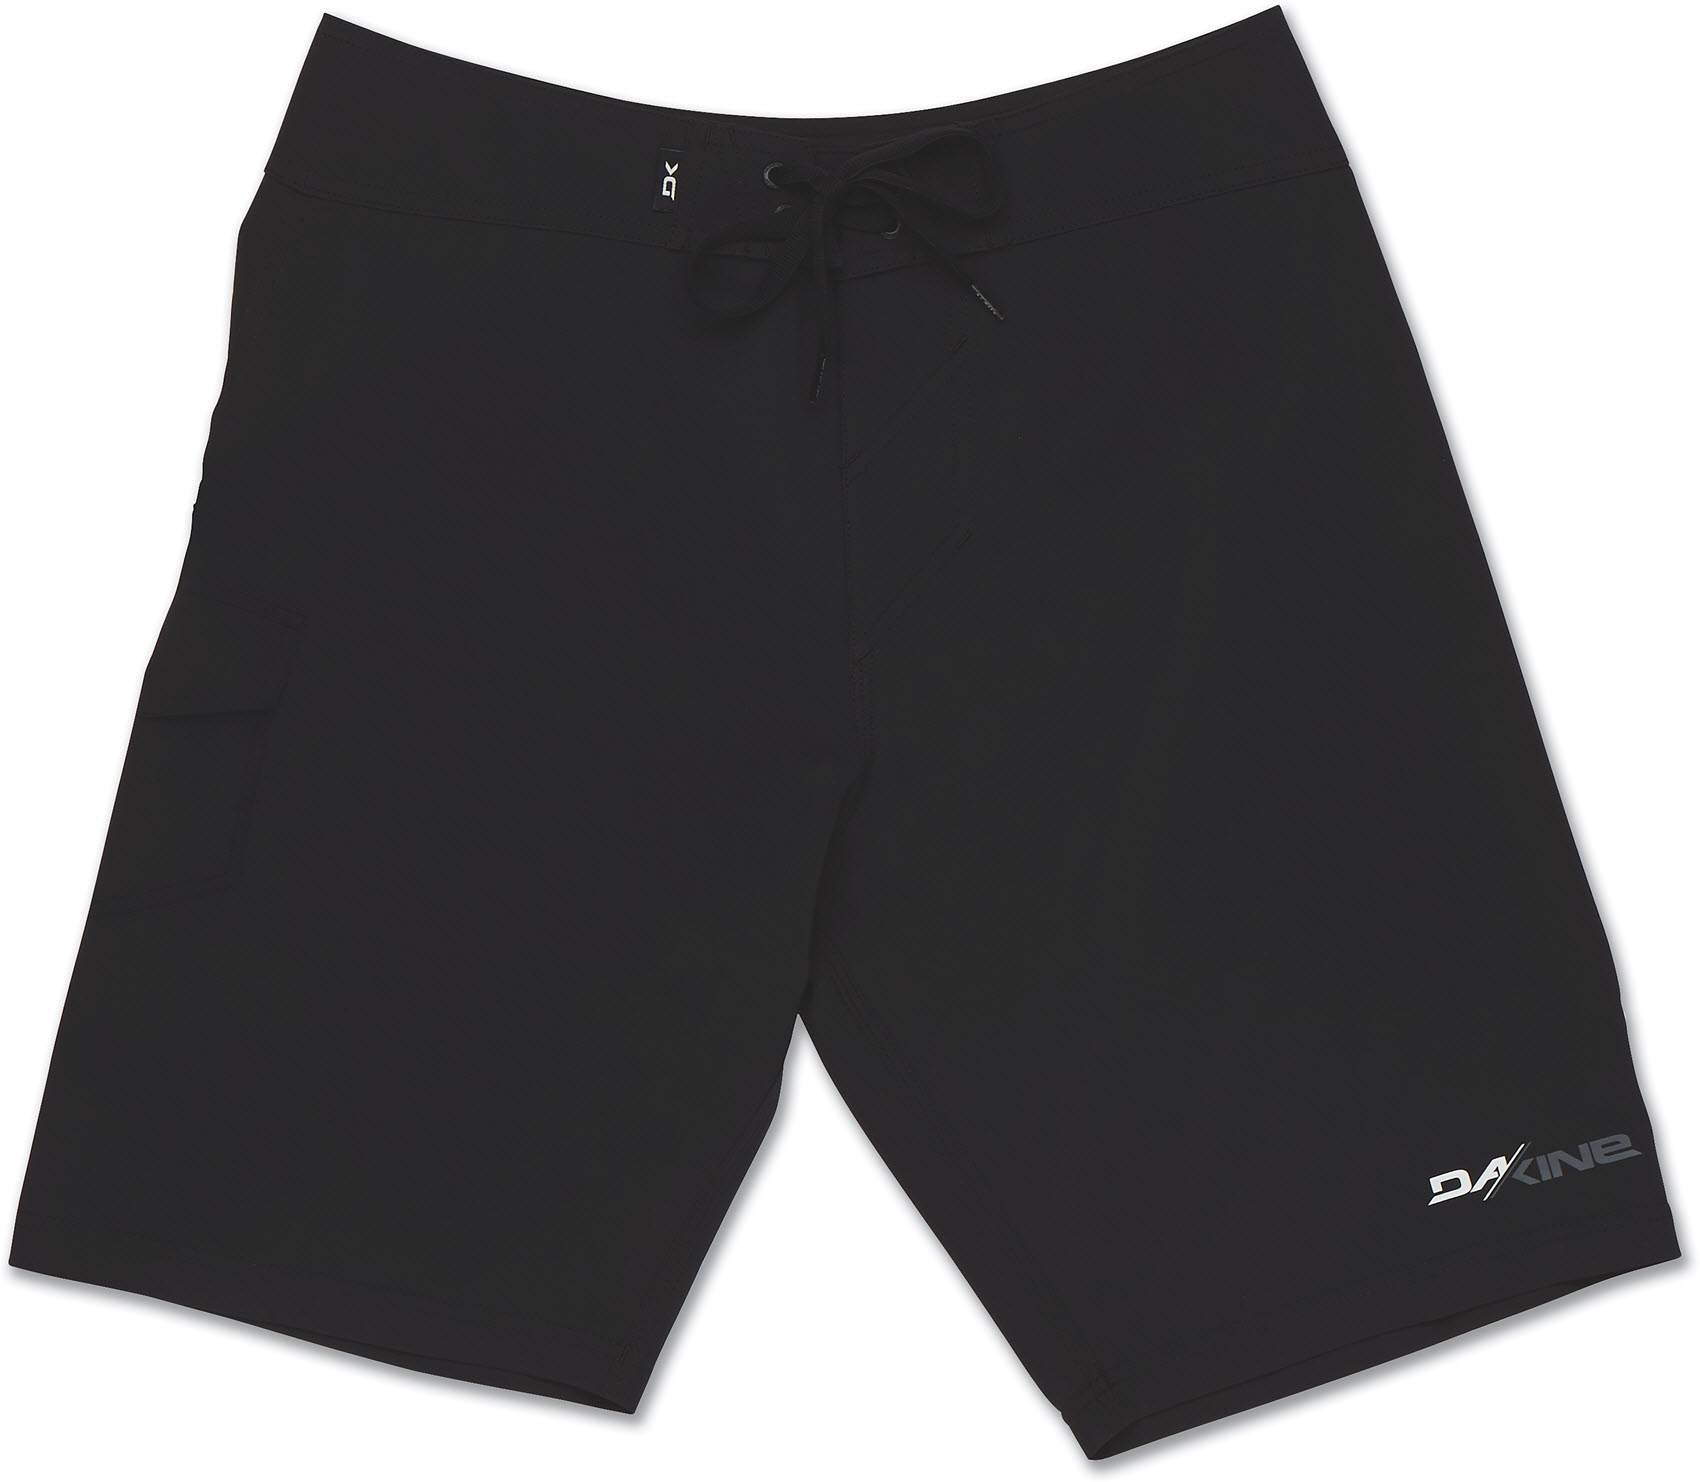 dakine prime board short 2016 in black 36